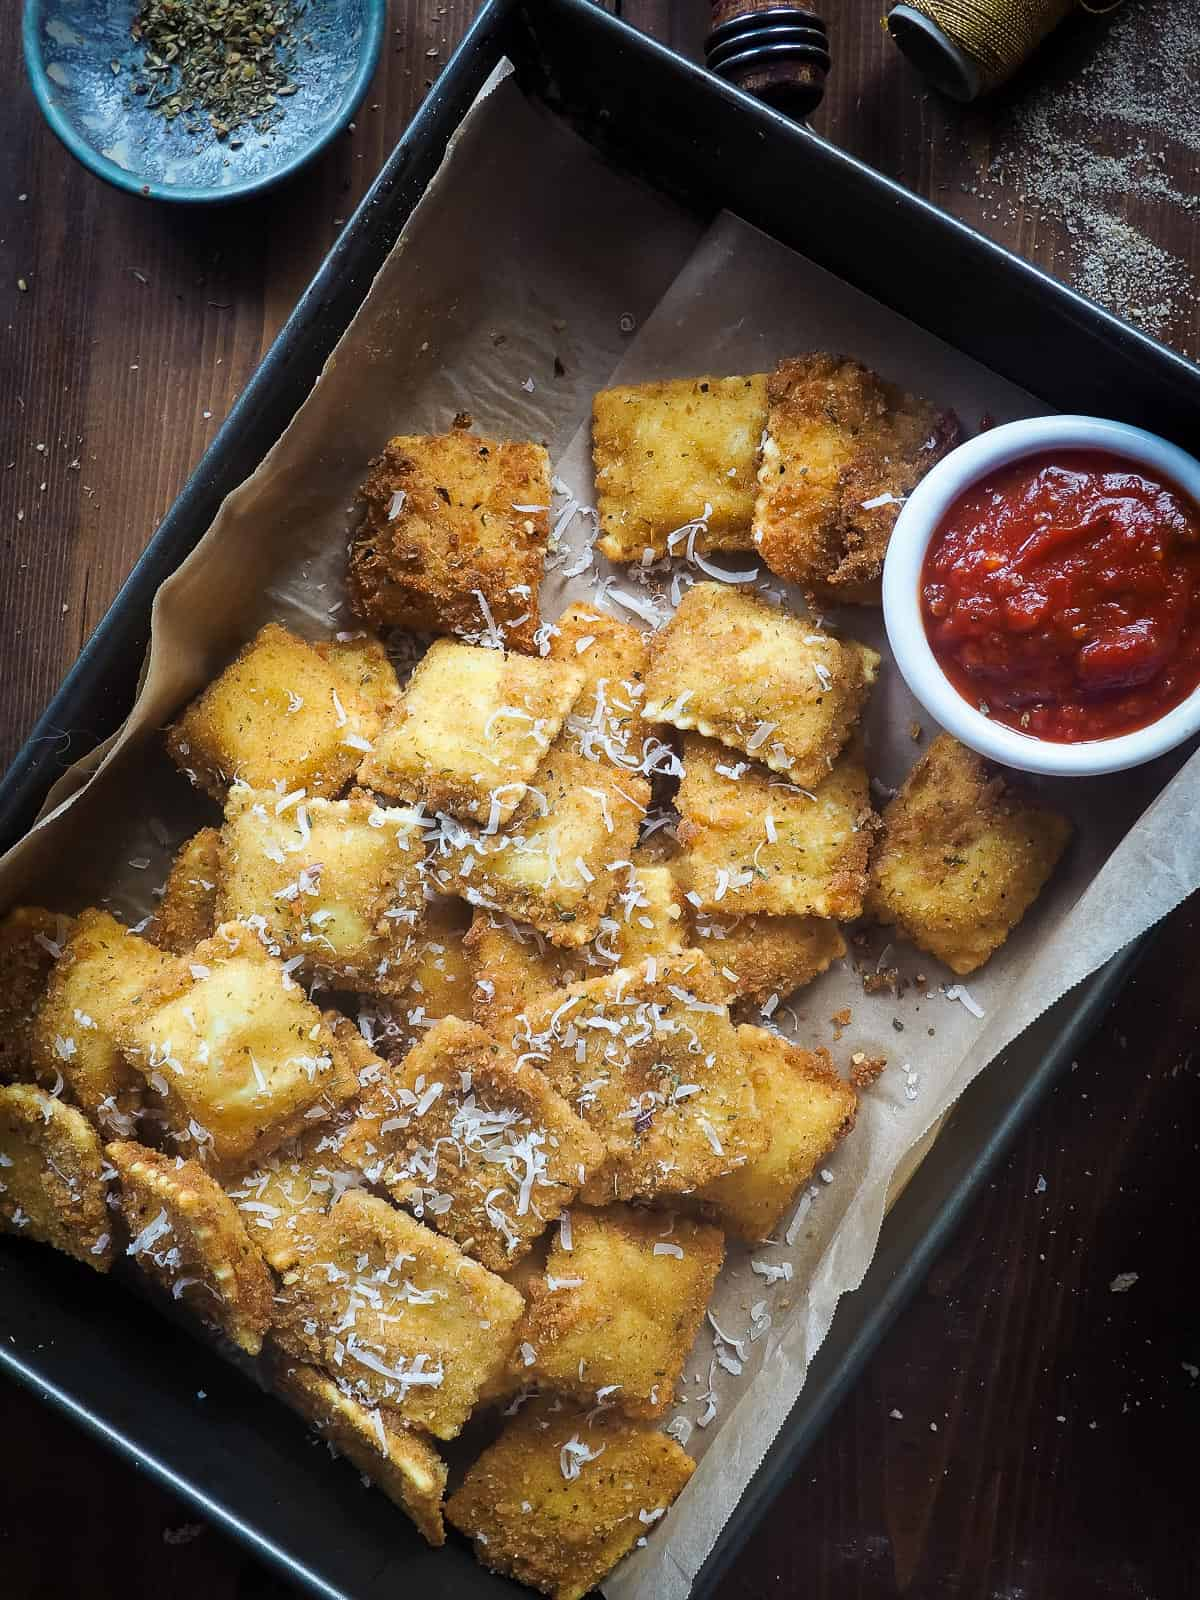 Fried ravioli in a baking pan with a bowl of sauce and a bowl of pizza seasoning.